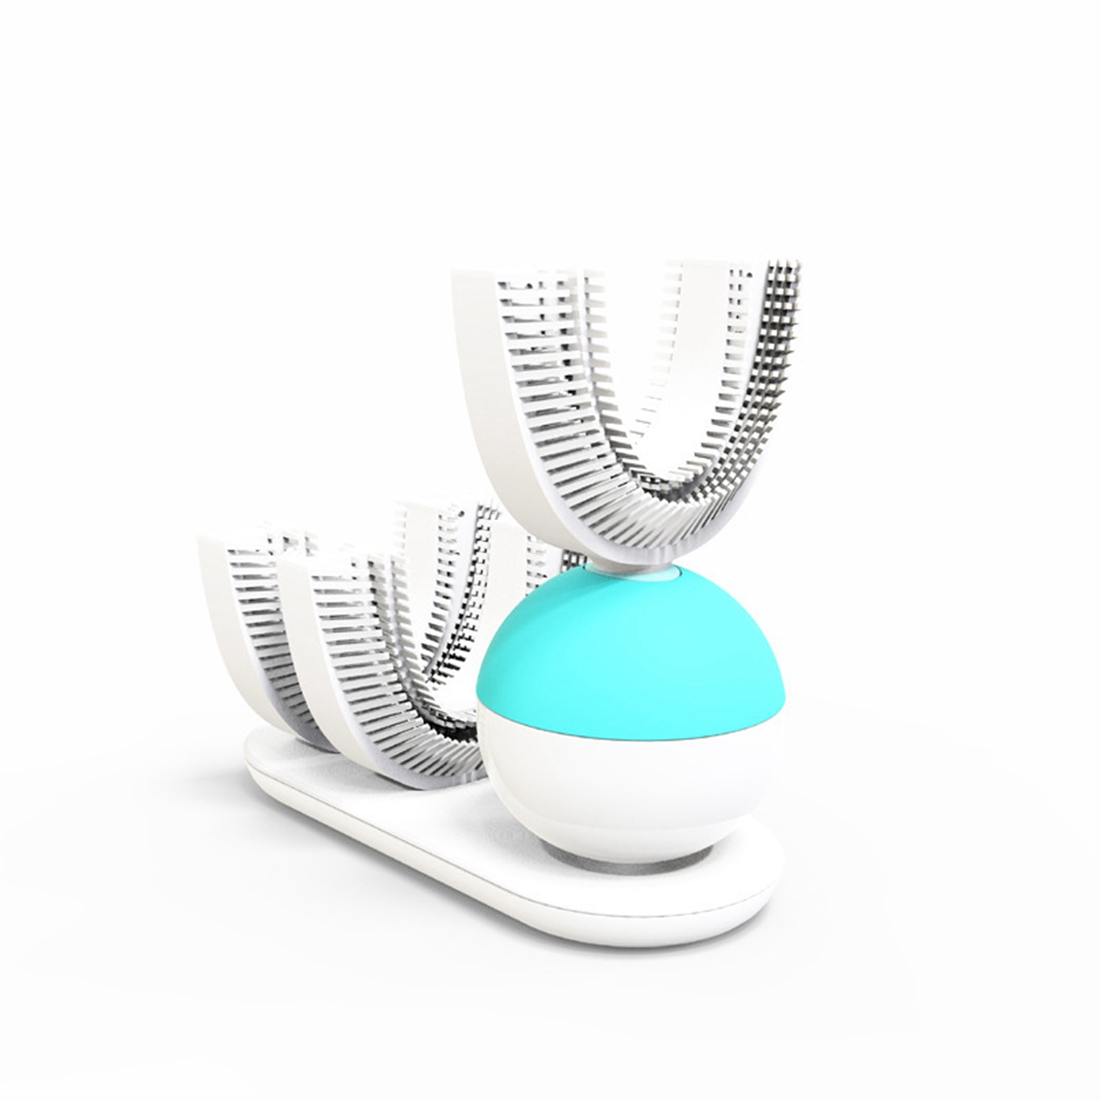 Top Sale 360 degree automatic intelligent packaged lazy toothbrush electric rapid cleaning sonic whitening rechargeable toothb image